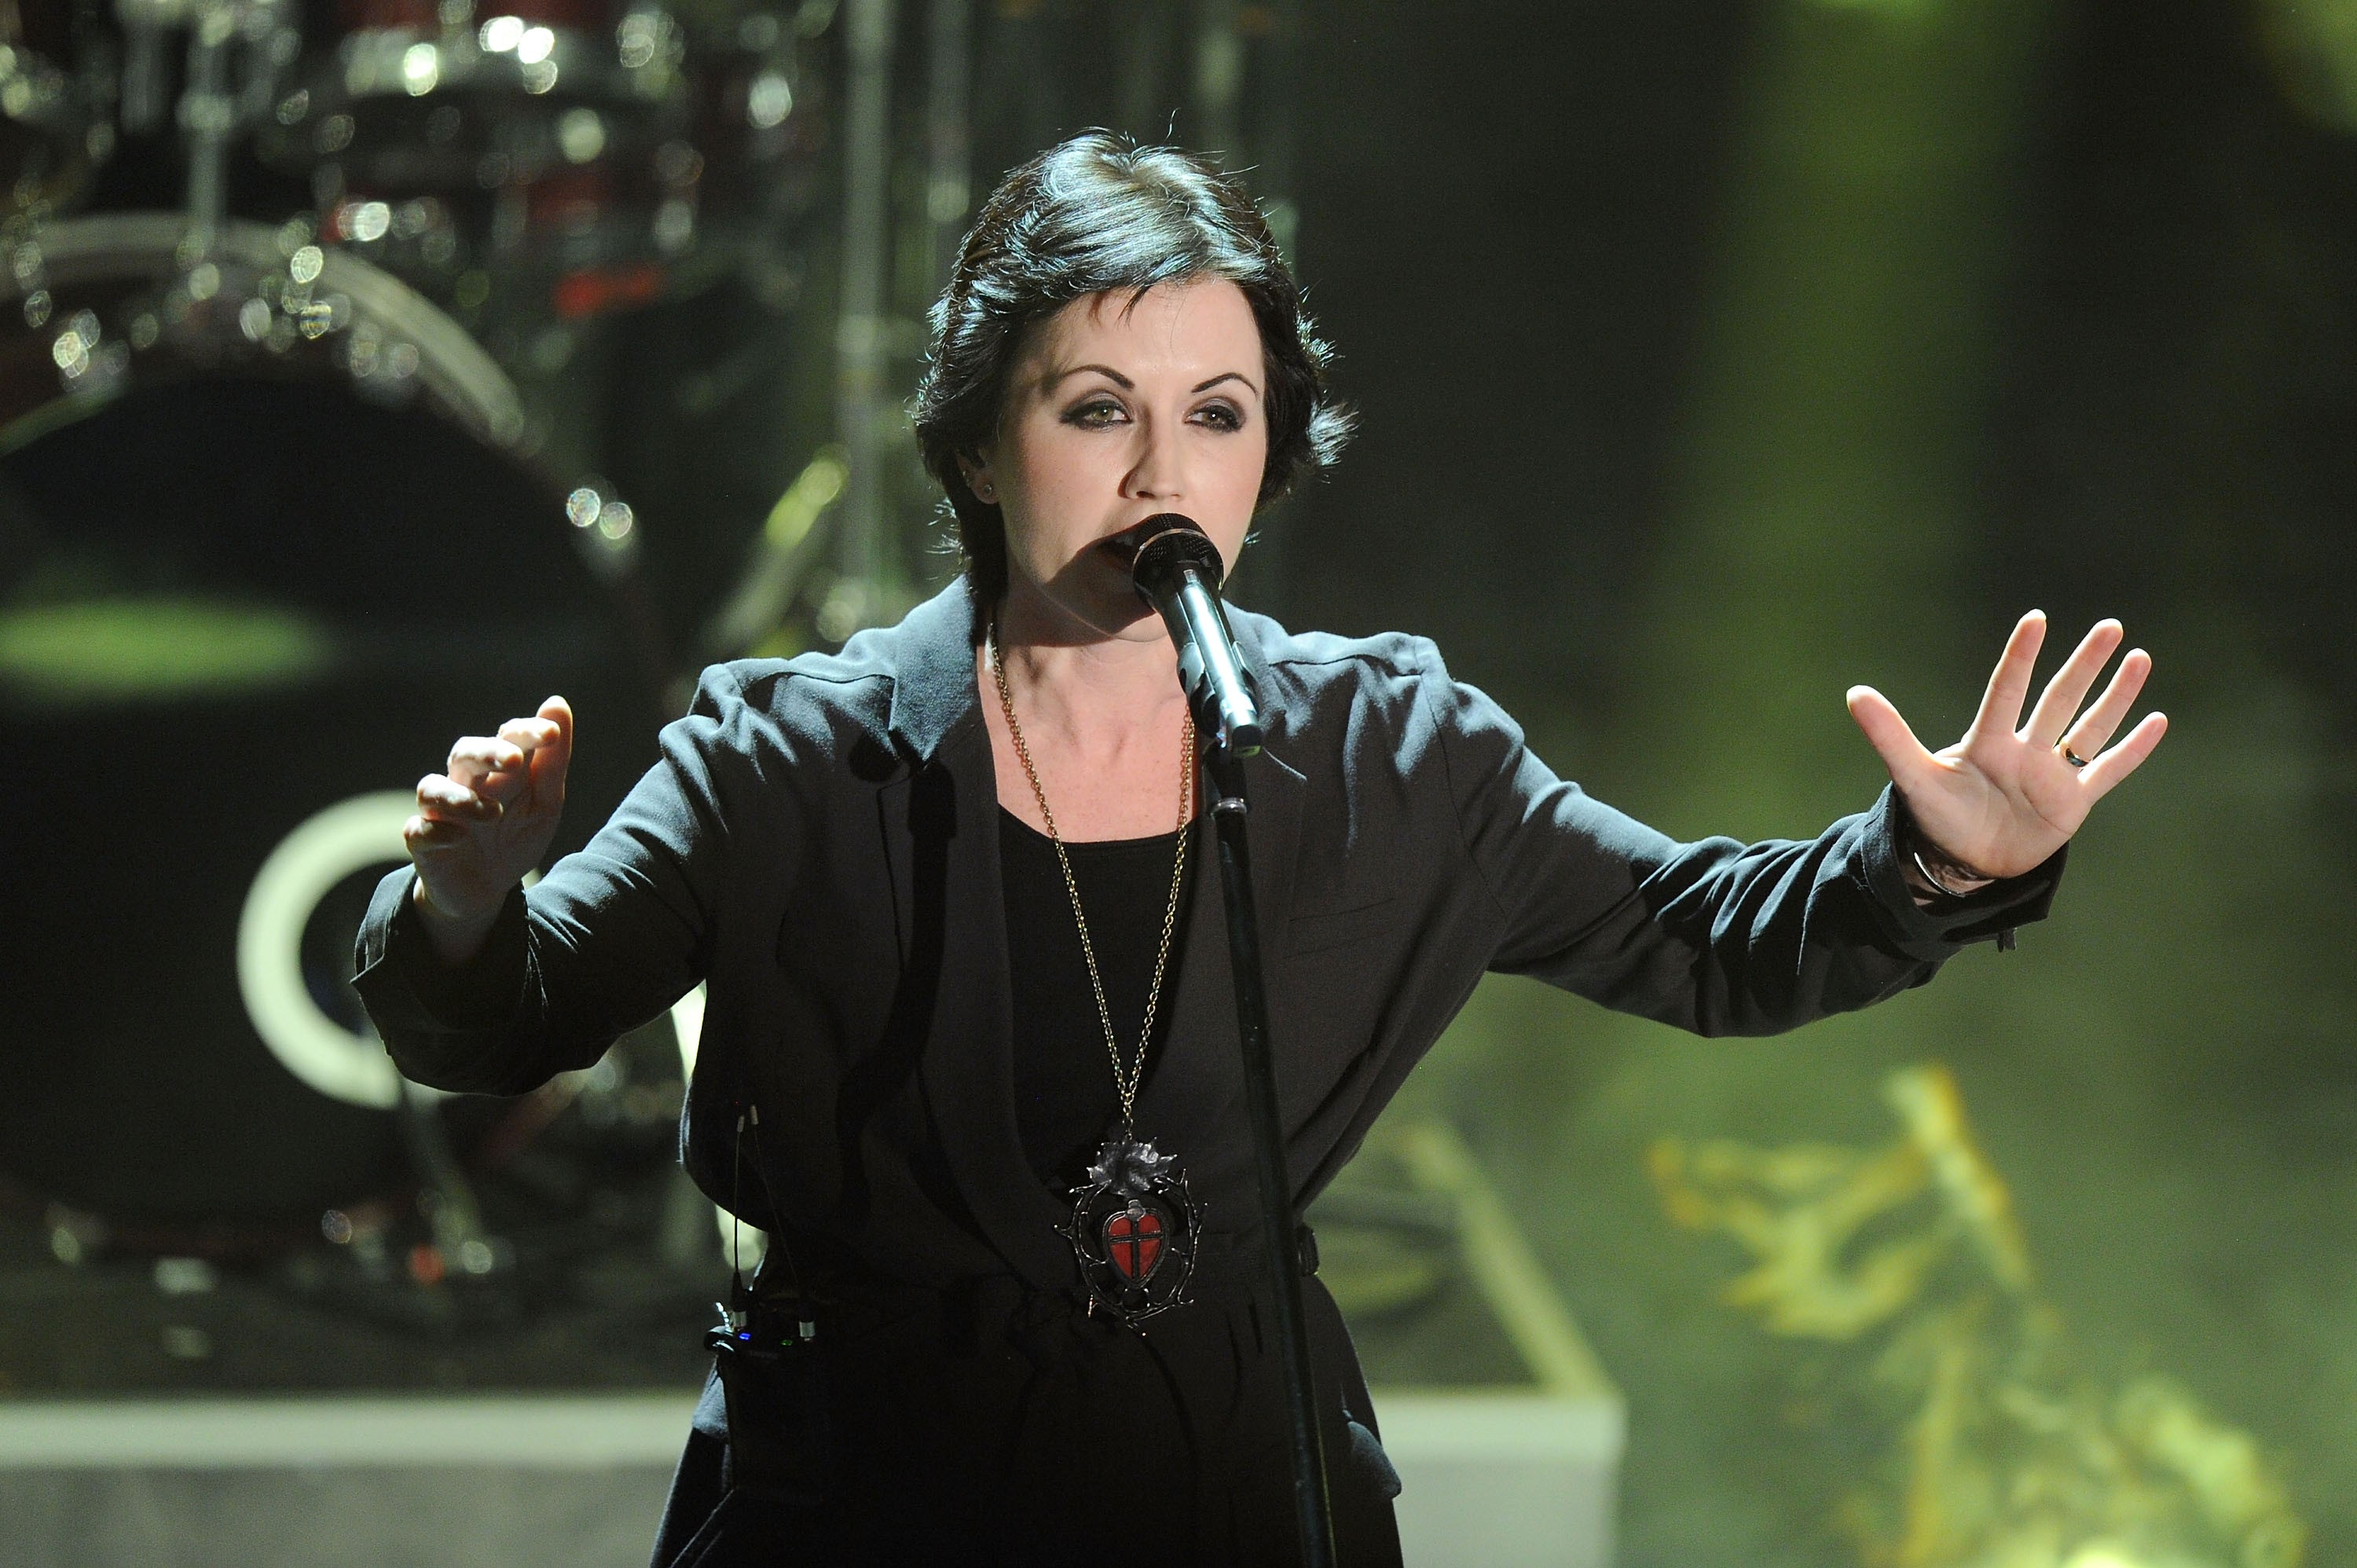 2012 Sanremo - The 62nd Italian Song Festival - Closing Night